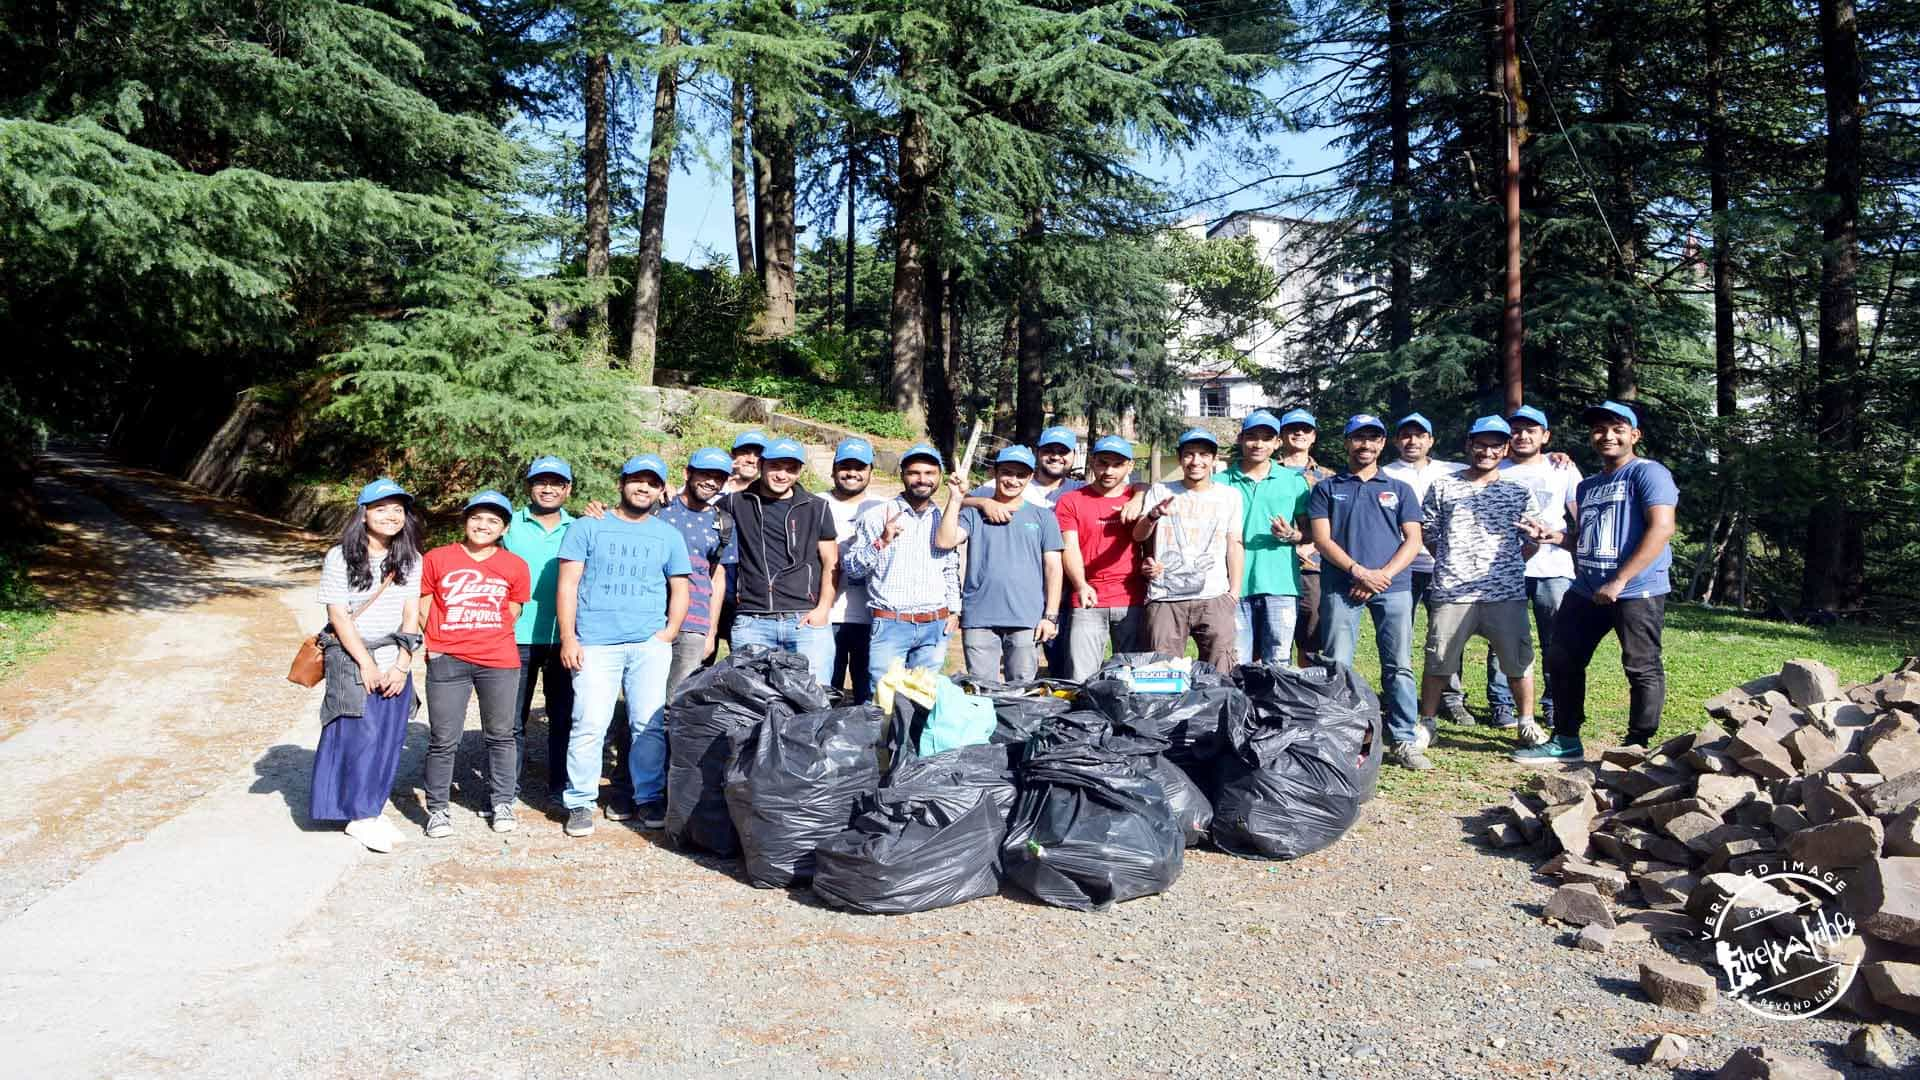 Cleanliness drive shimla - Trekatribe & Instahimachal collaboration